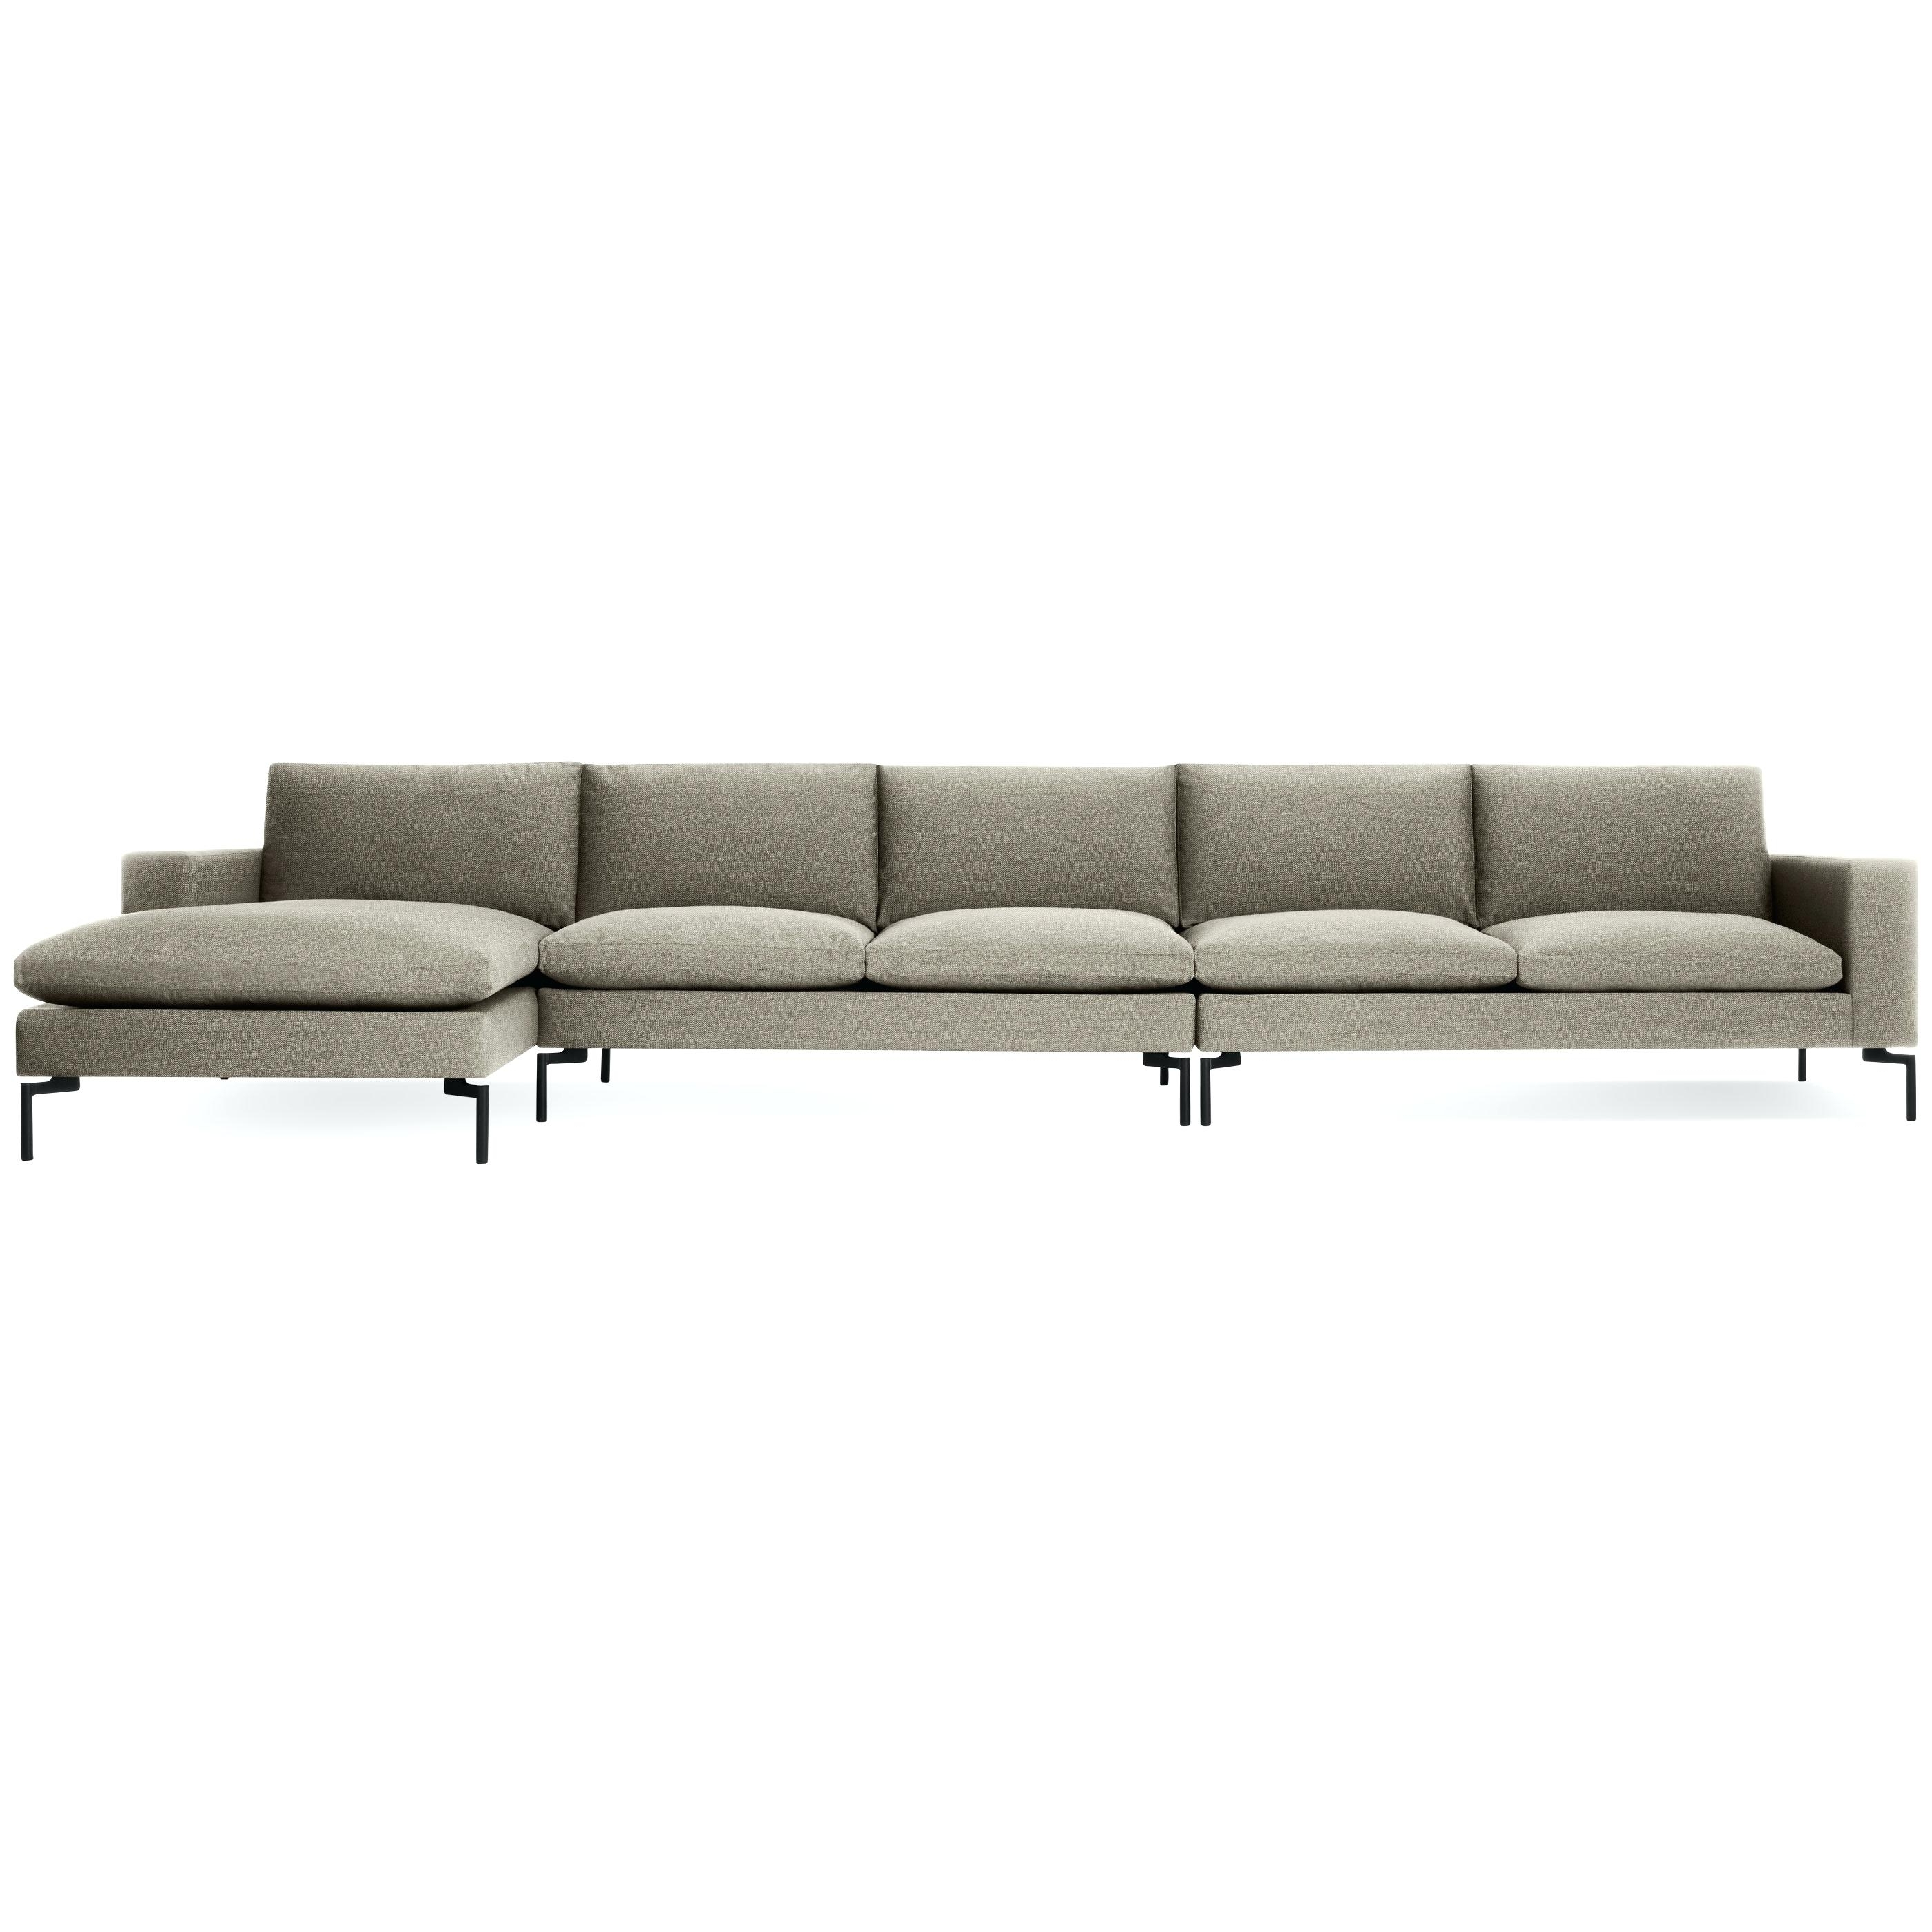 Sectional Bed Couch Bh Sleeper Sofa Leather Ashley Furniture Ikea Inside Latest Nebraska Furniture Mart Sectional Sofas (View 18 of 20)